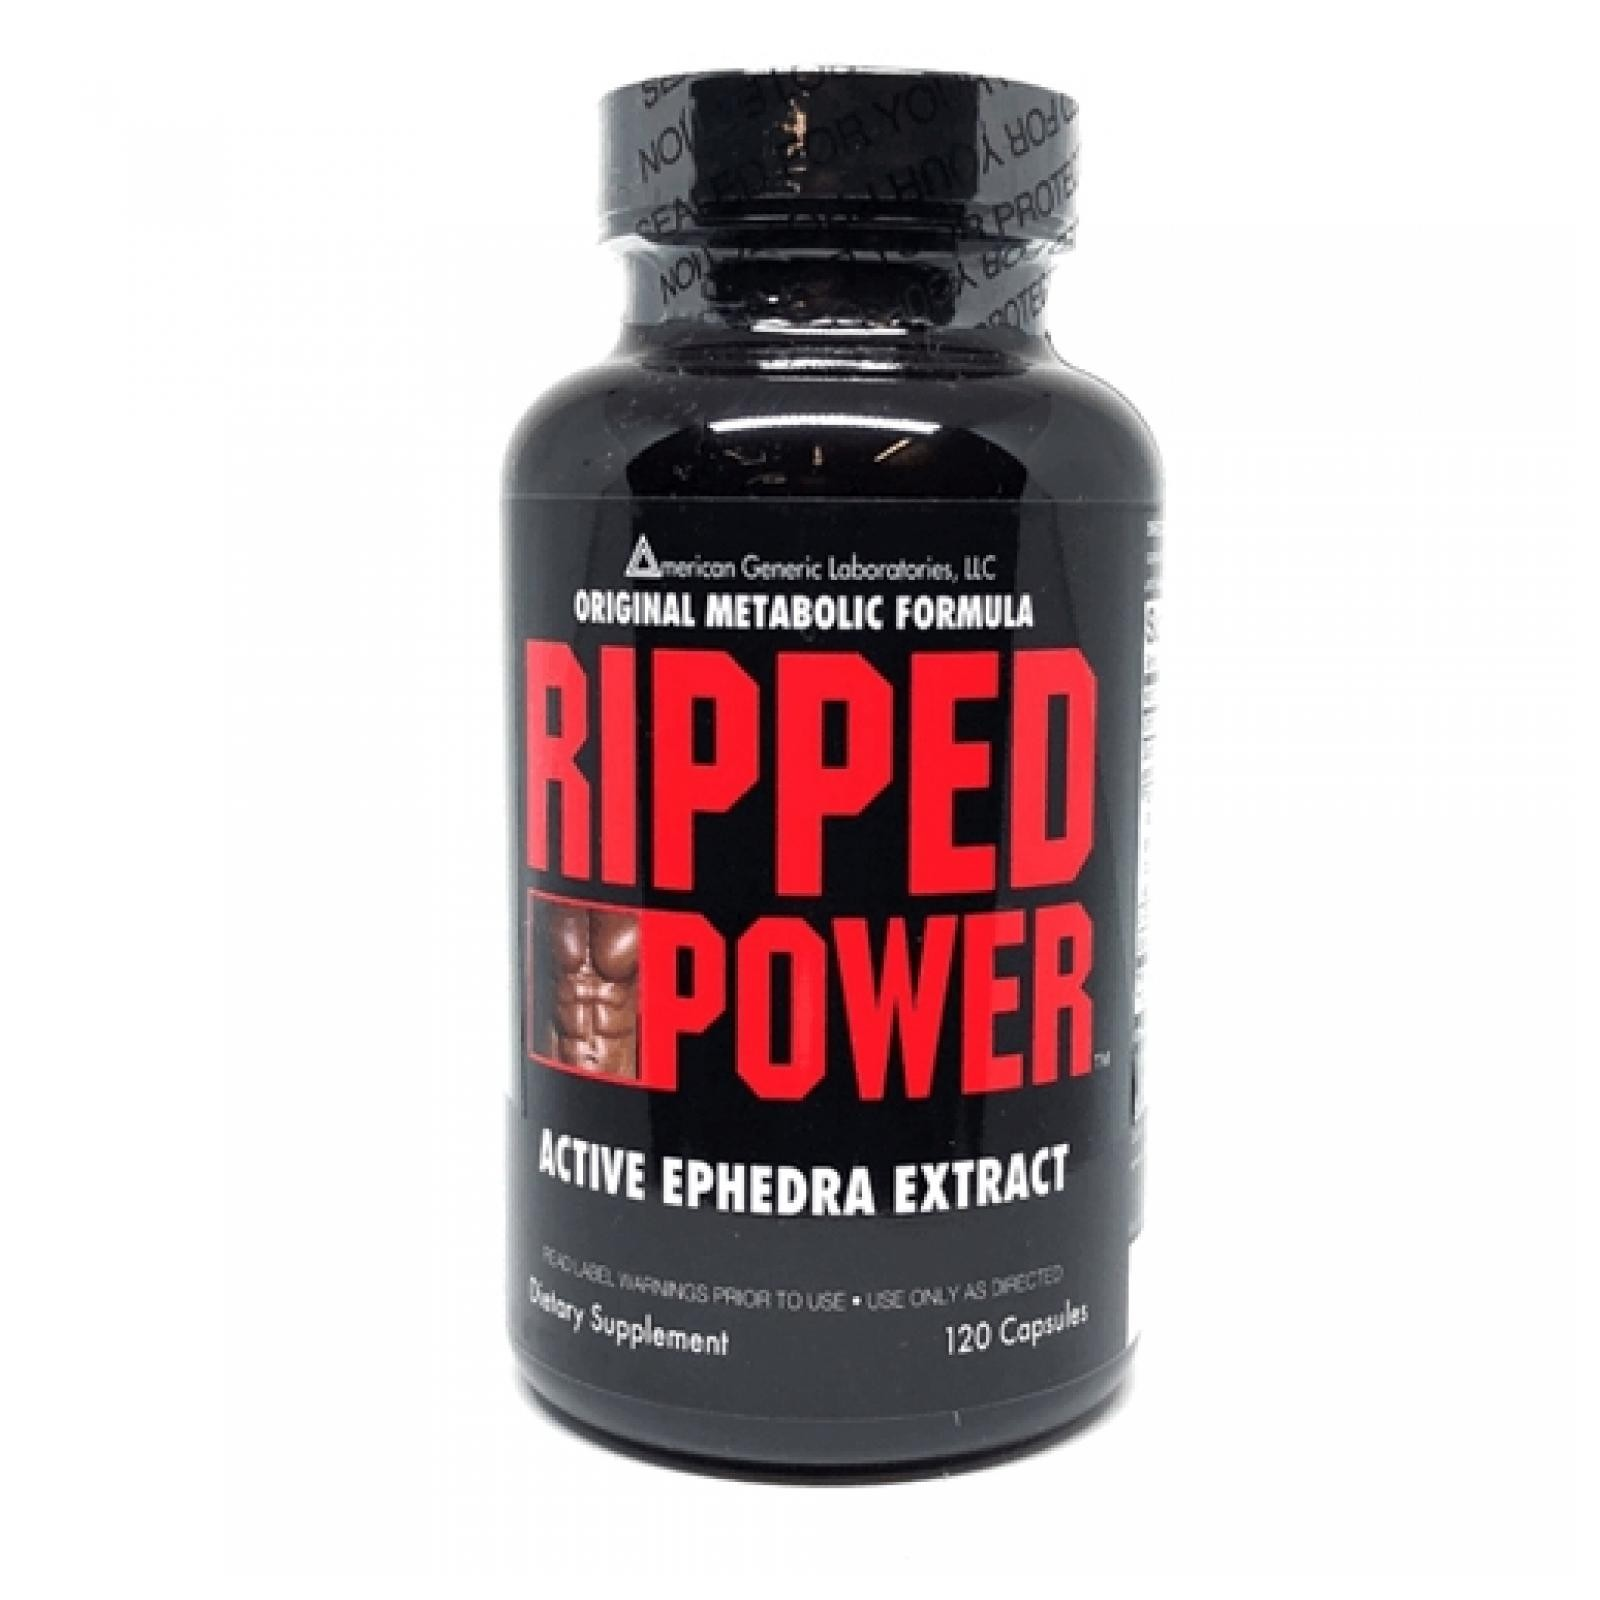 Ripped Power with Ephedra Extract- 120 Capsules